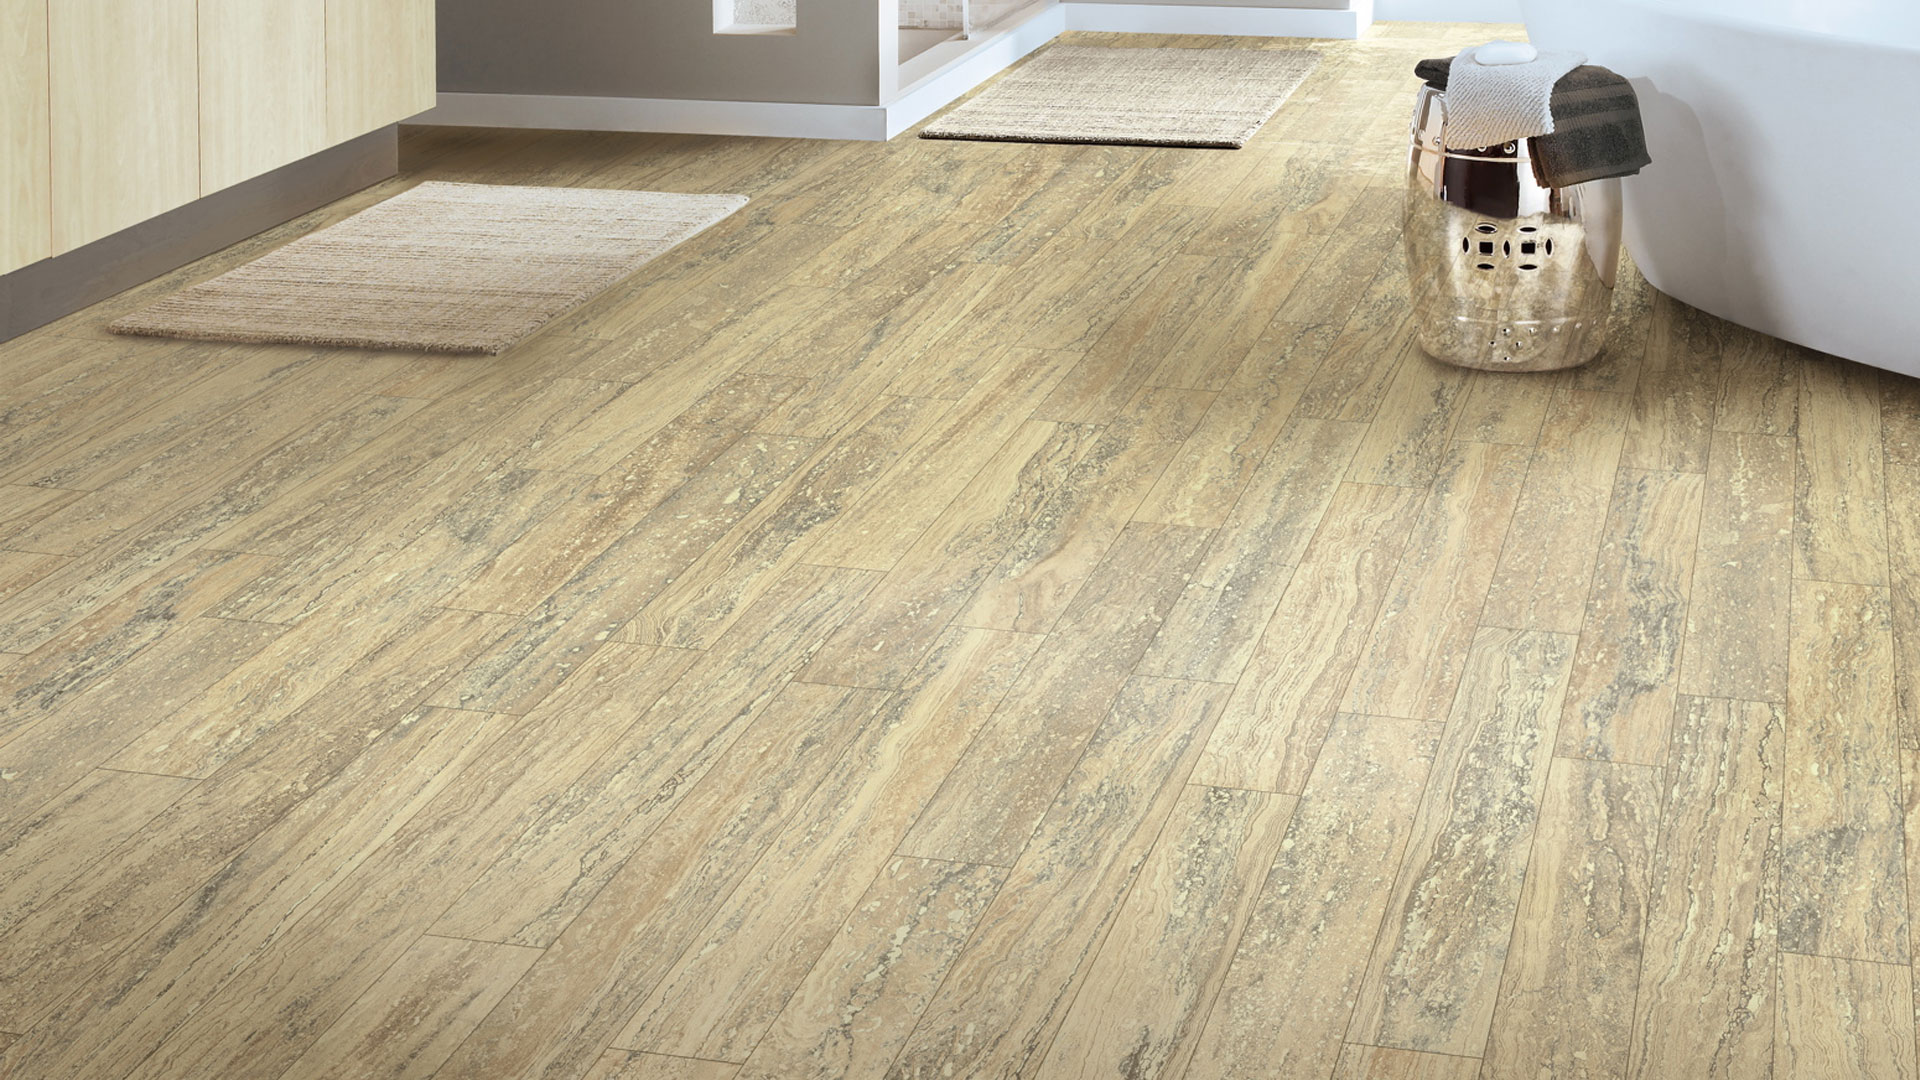 Gallery For gt Vinyl Sheet Flooring